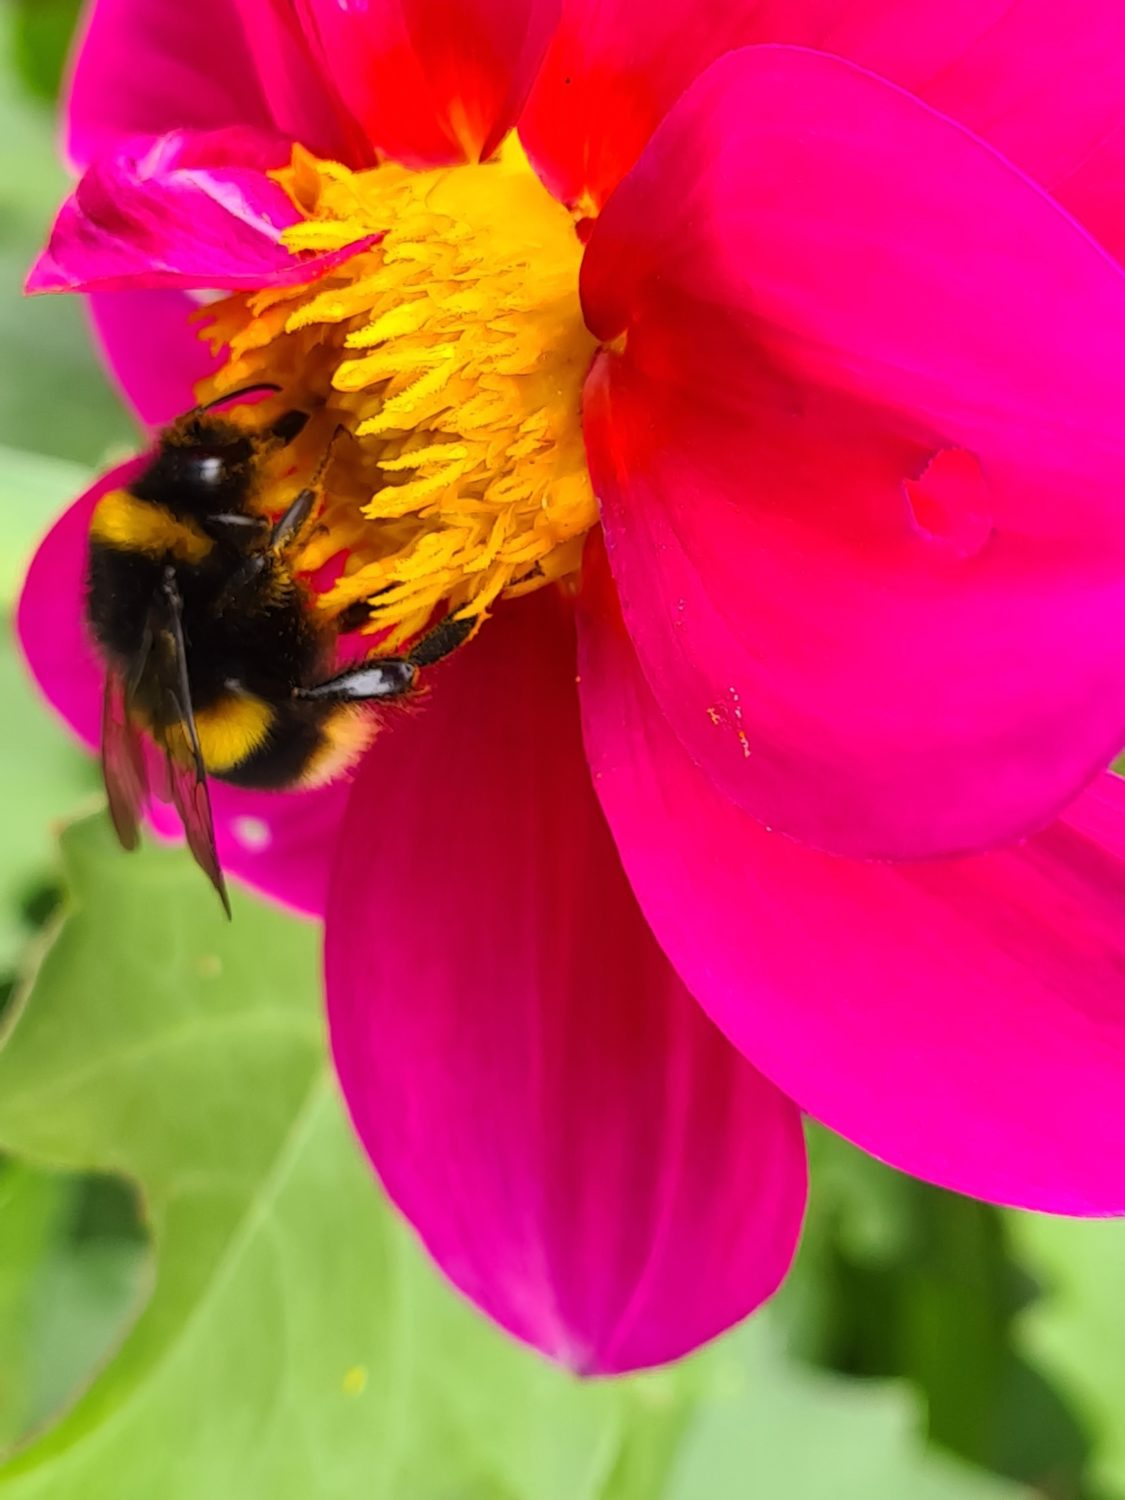 Close-up photograph of a bumblebee collecting pollen from the centre of a vibrant pink flower.